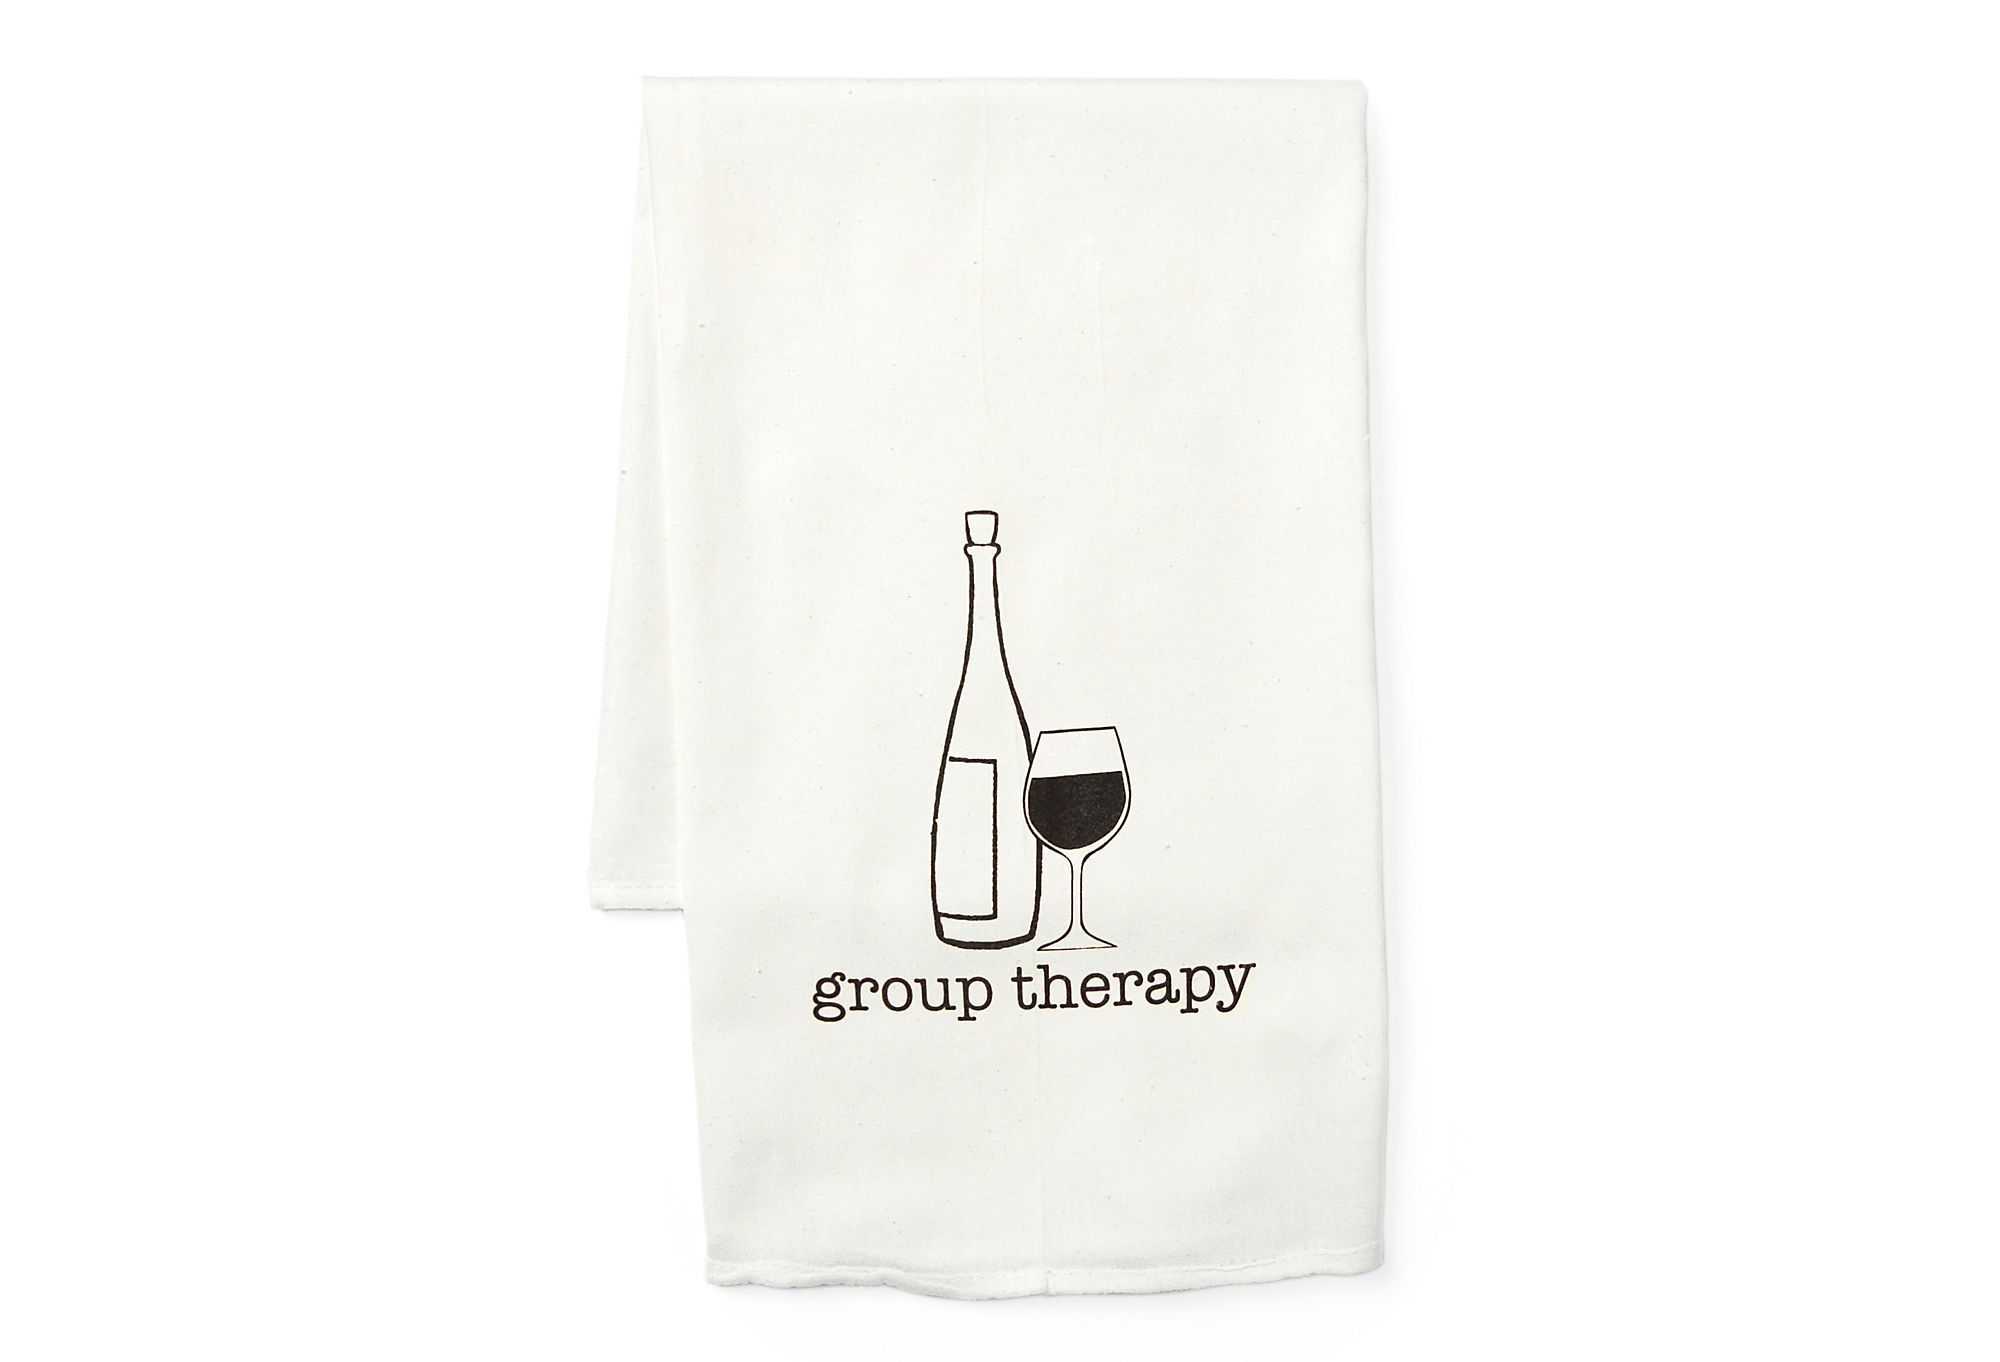 """One Kings Lane - Summer-Party Invites - S/2 """"group therapy"""" Tea Towels"""